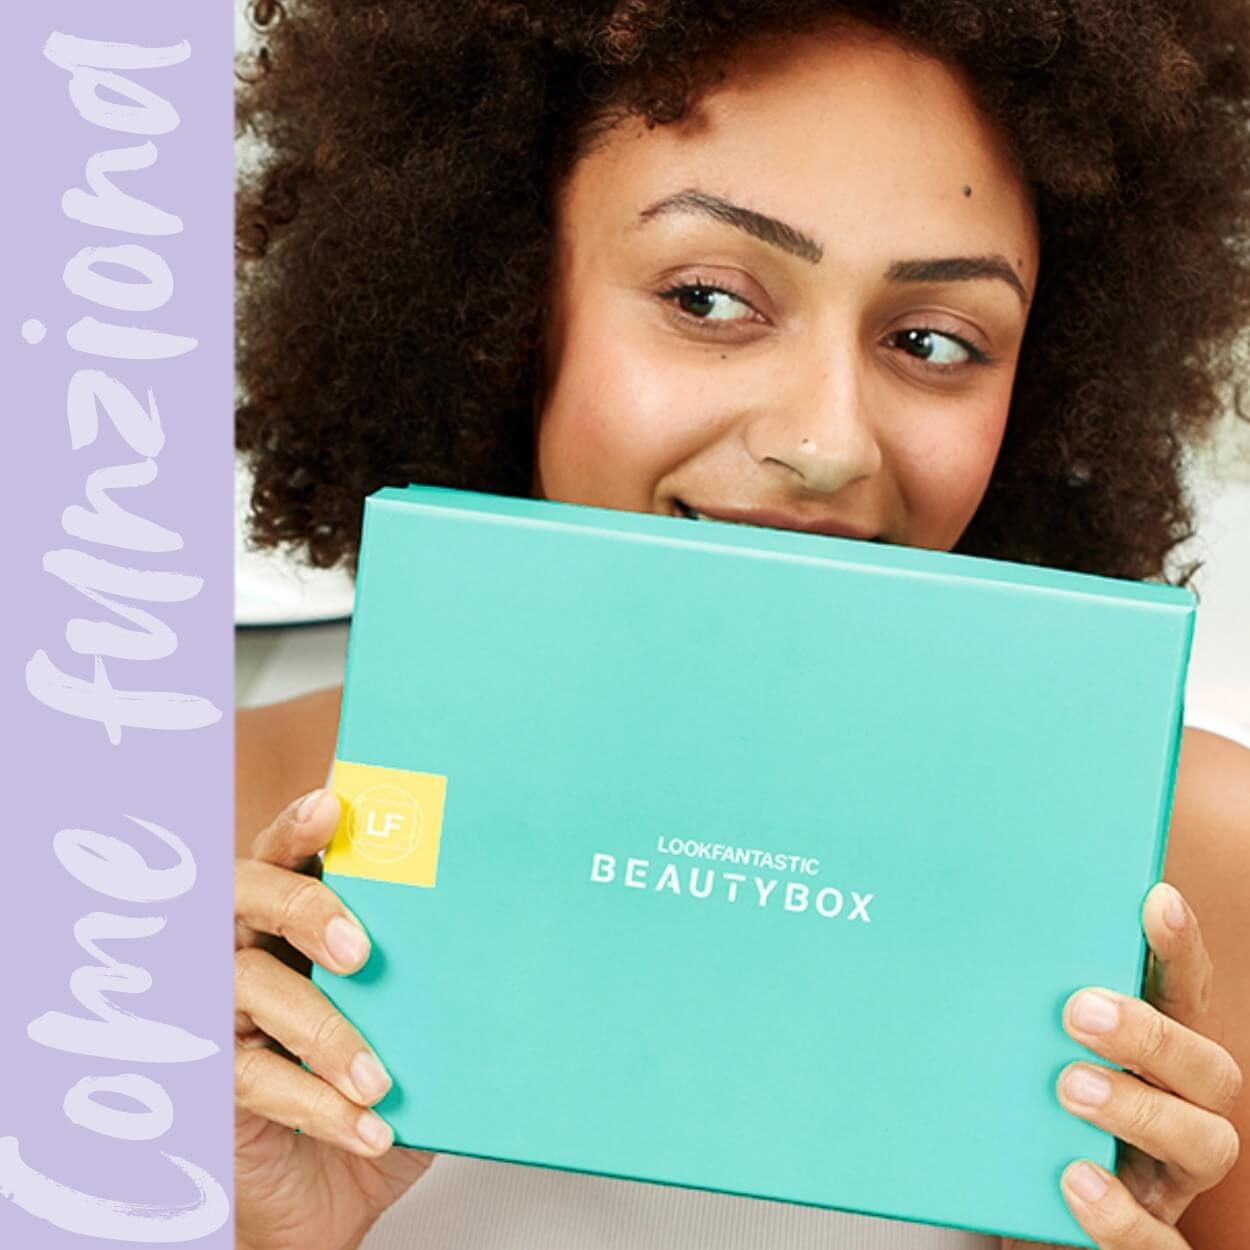 Beauty Box Come funziona?